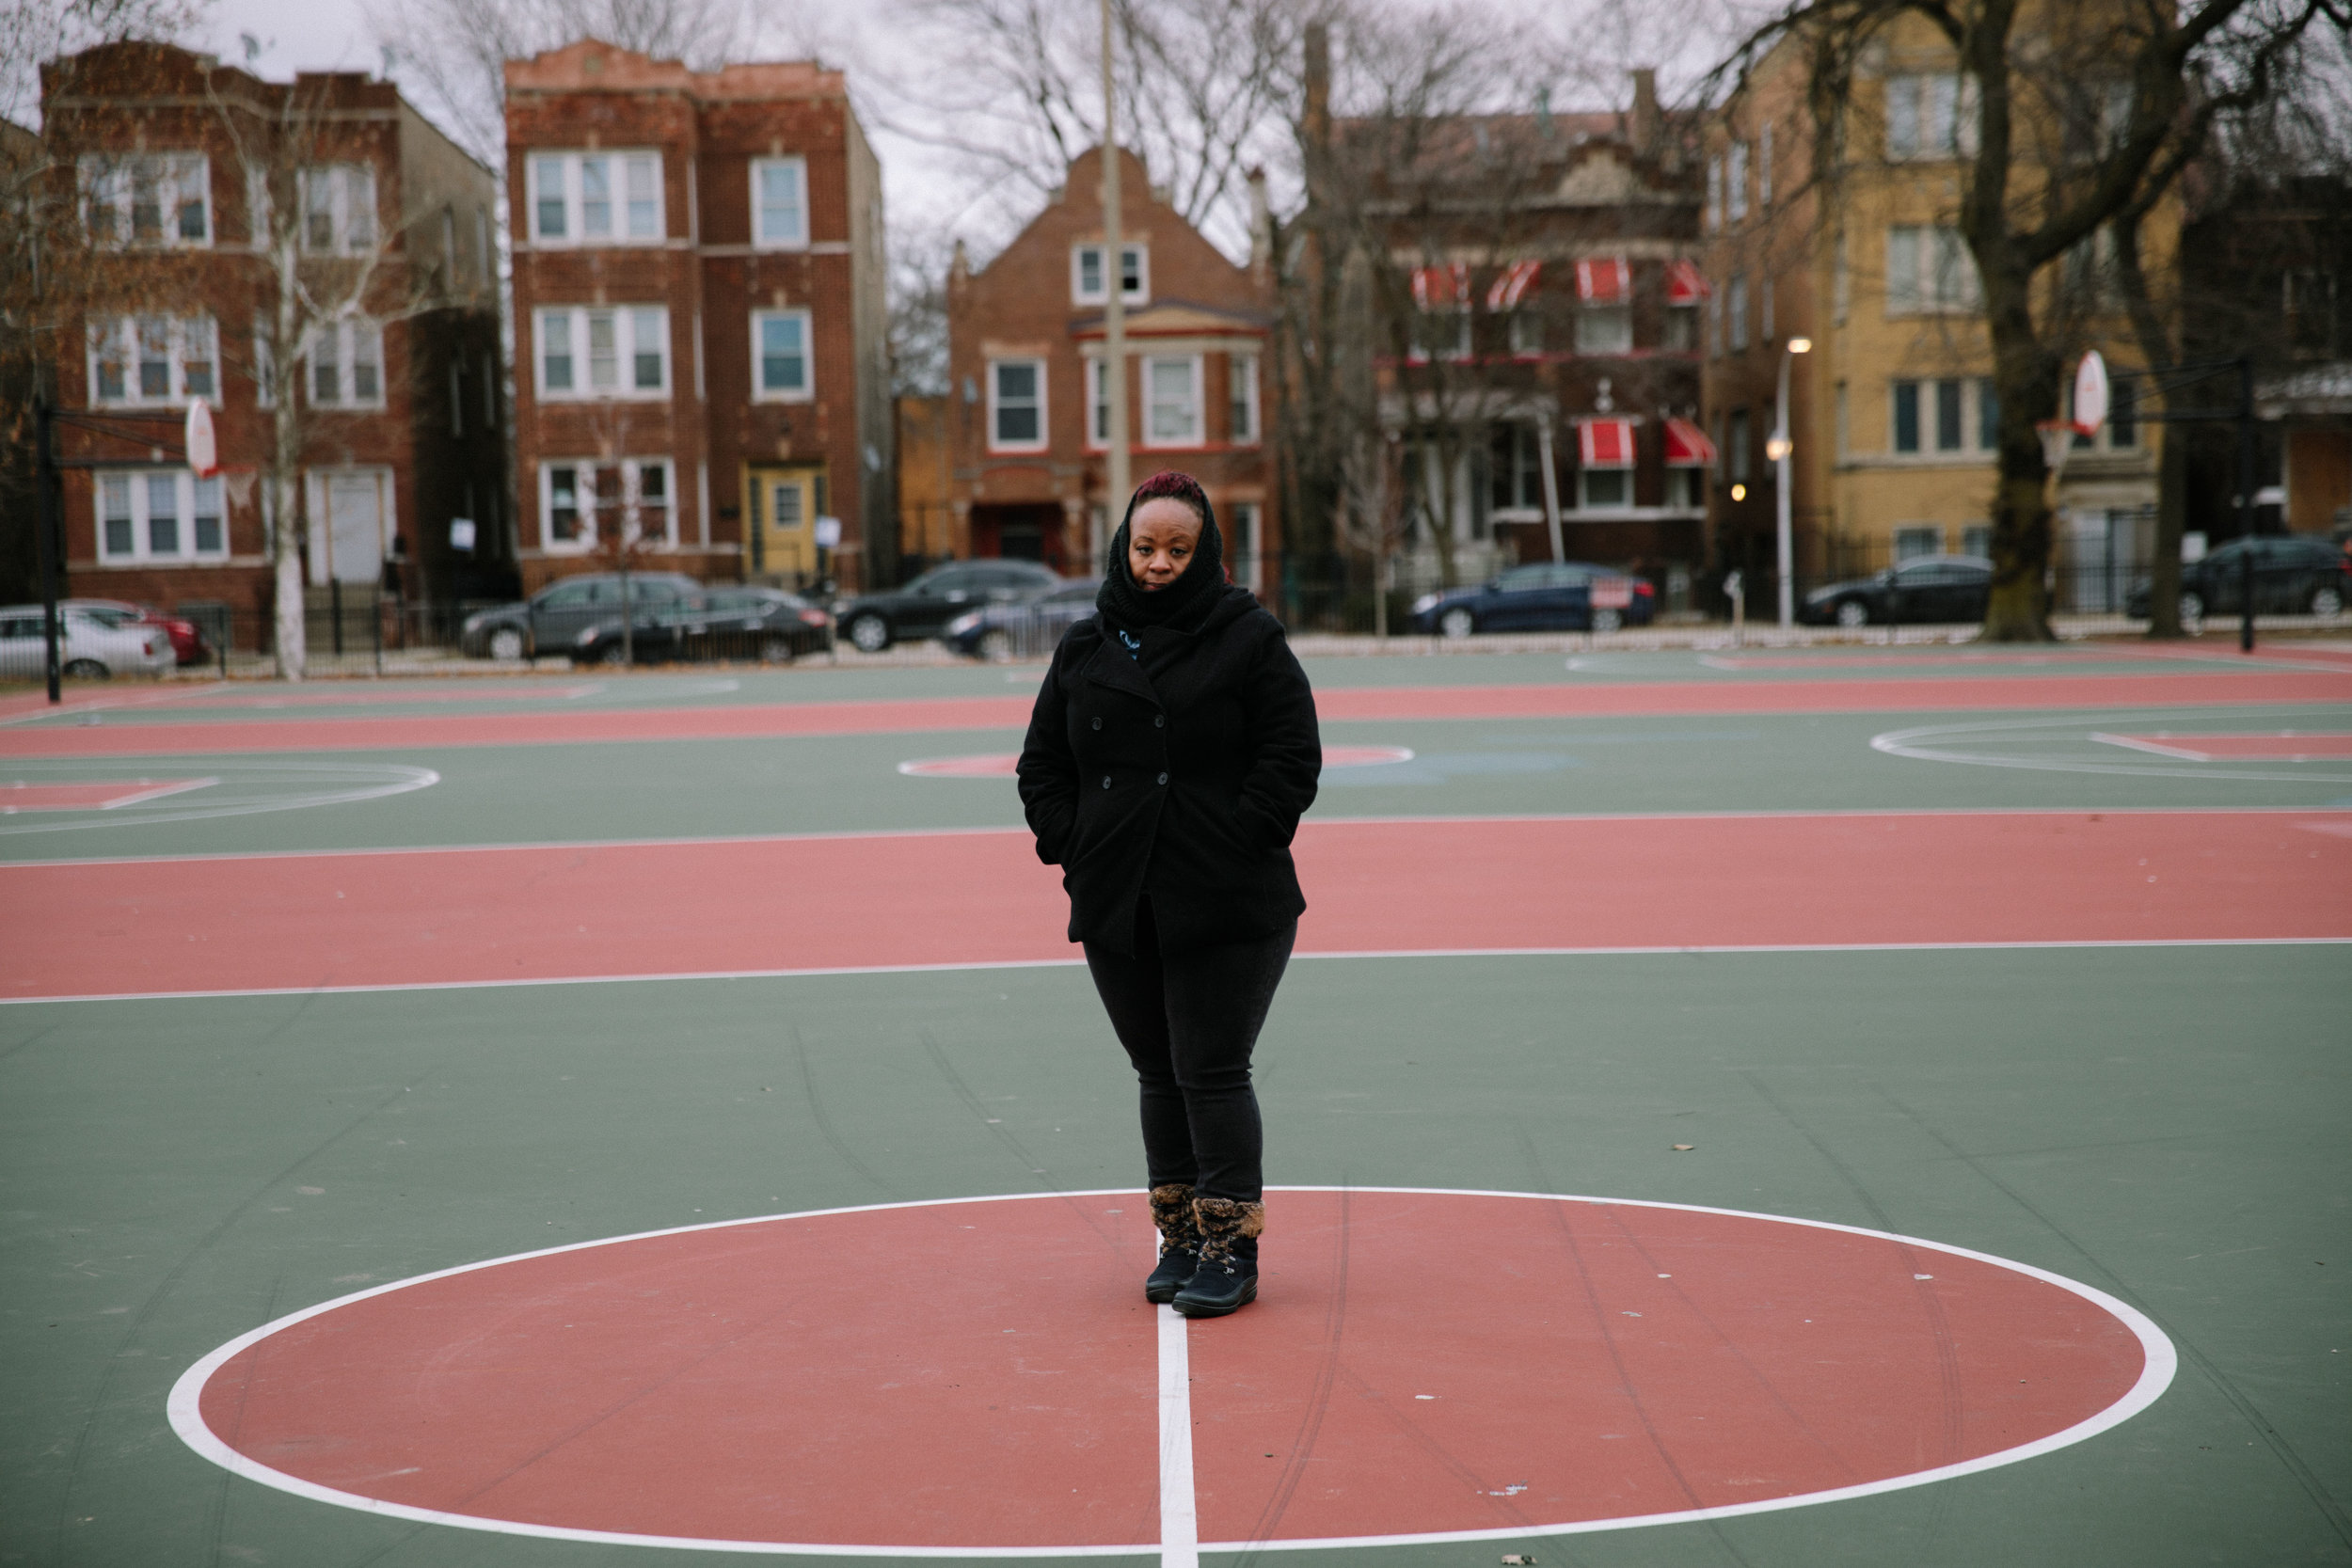 """Corniki Bornds stands on the basketball courts at Franklin Park on Chicago's west side. In 2017 Corniki's only son, BJ, was murdered in a non-targeted shooting as he walked to the park to play basketball with his friends. Corniki shares, """"I tell everybody when I go there, 'I'm not going to claim this as the place where my son died - its the place my son lived. I have more memories of his life here than his death, so I'm not going to associate it with that, even though that's what it is.'"""" In the aftermath of her son's death, Corniki found support through other mothers who had also lost children to gun violence. The support group is run by Parents for Peace and Justice, a support and advocacy organization in Chicago. MCC partners with Parents for Peace and Justice to help support their important work."""